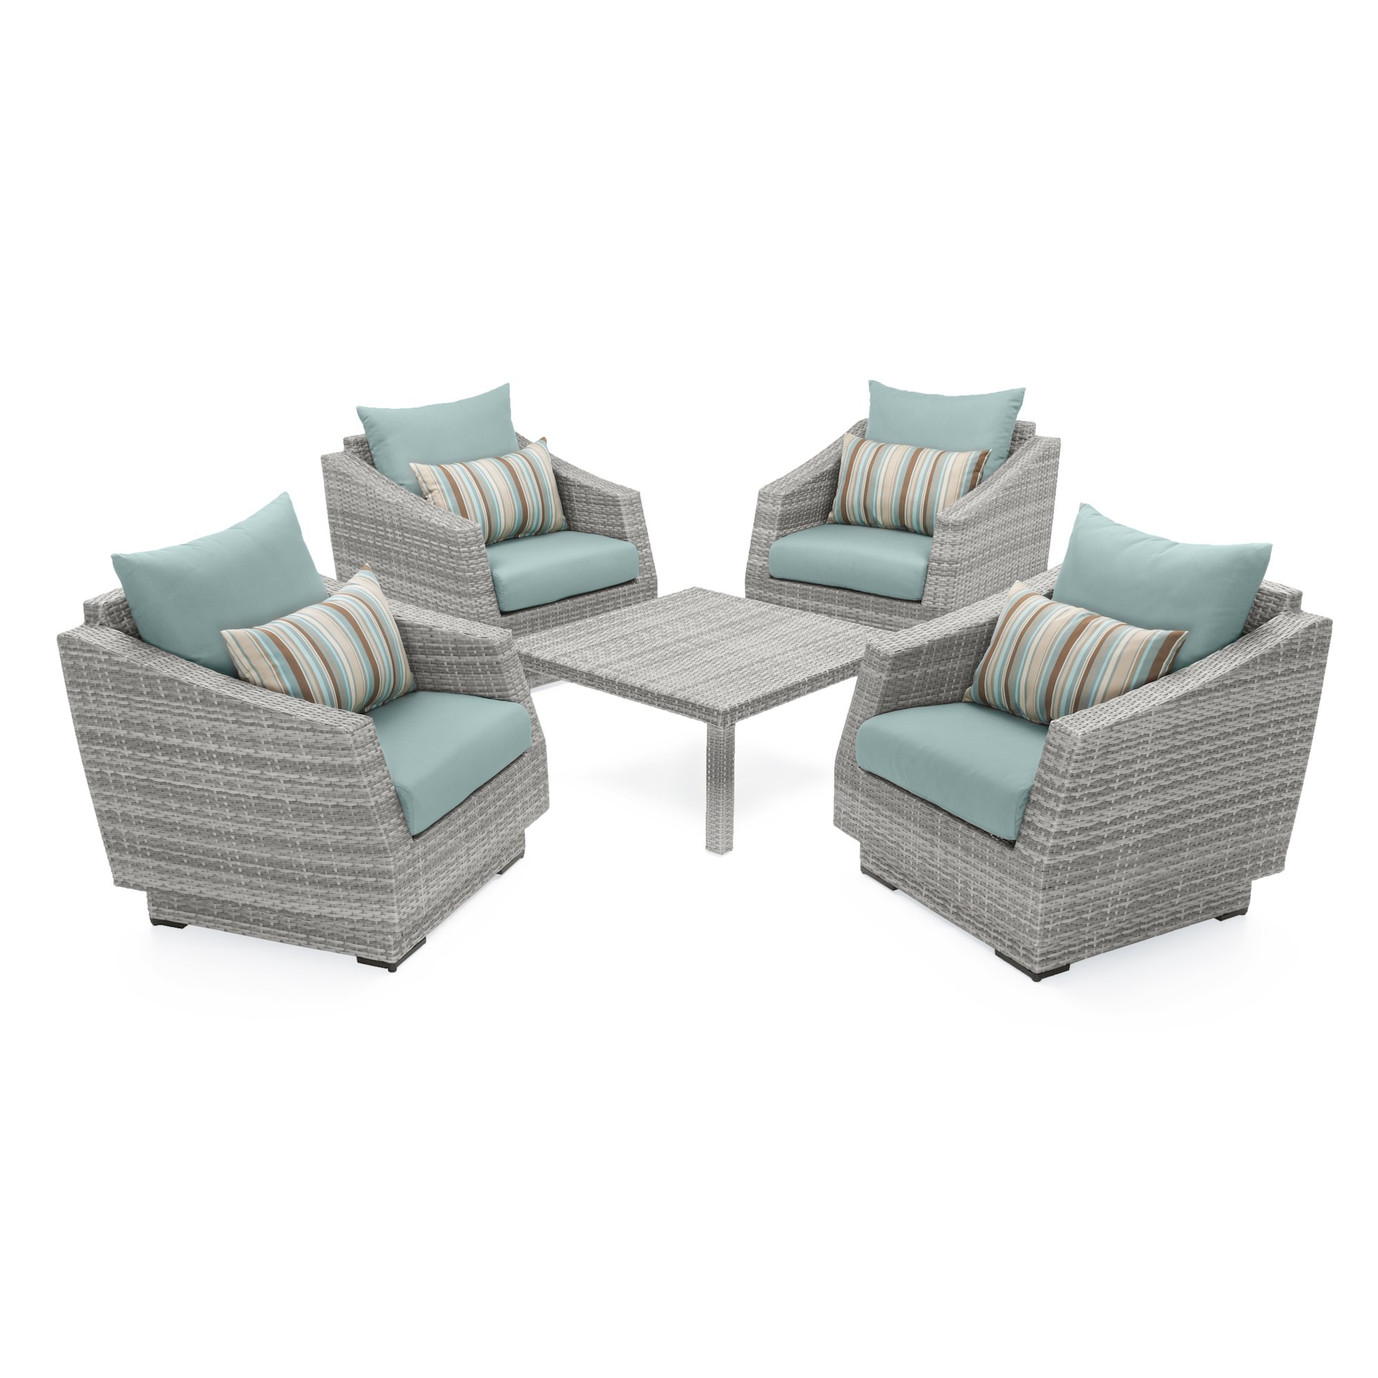 Cannes™ 5pc Club & Table Chat Set - Bliss Blue